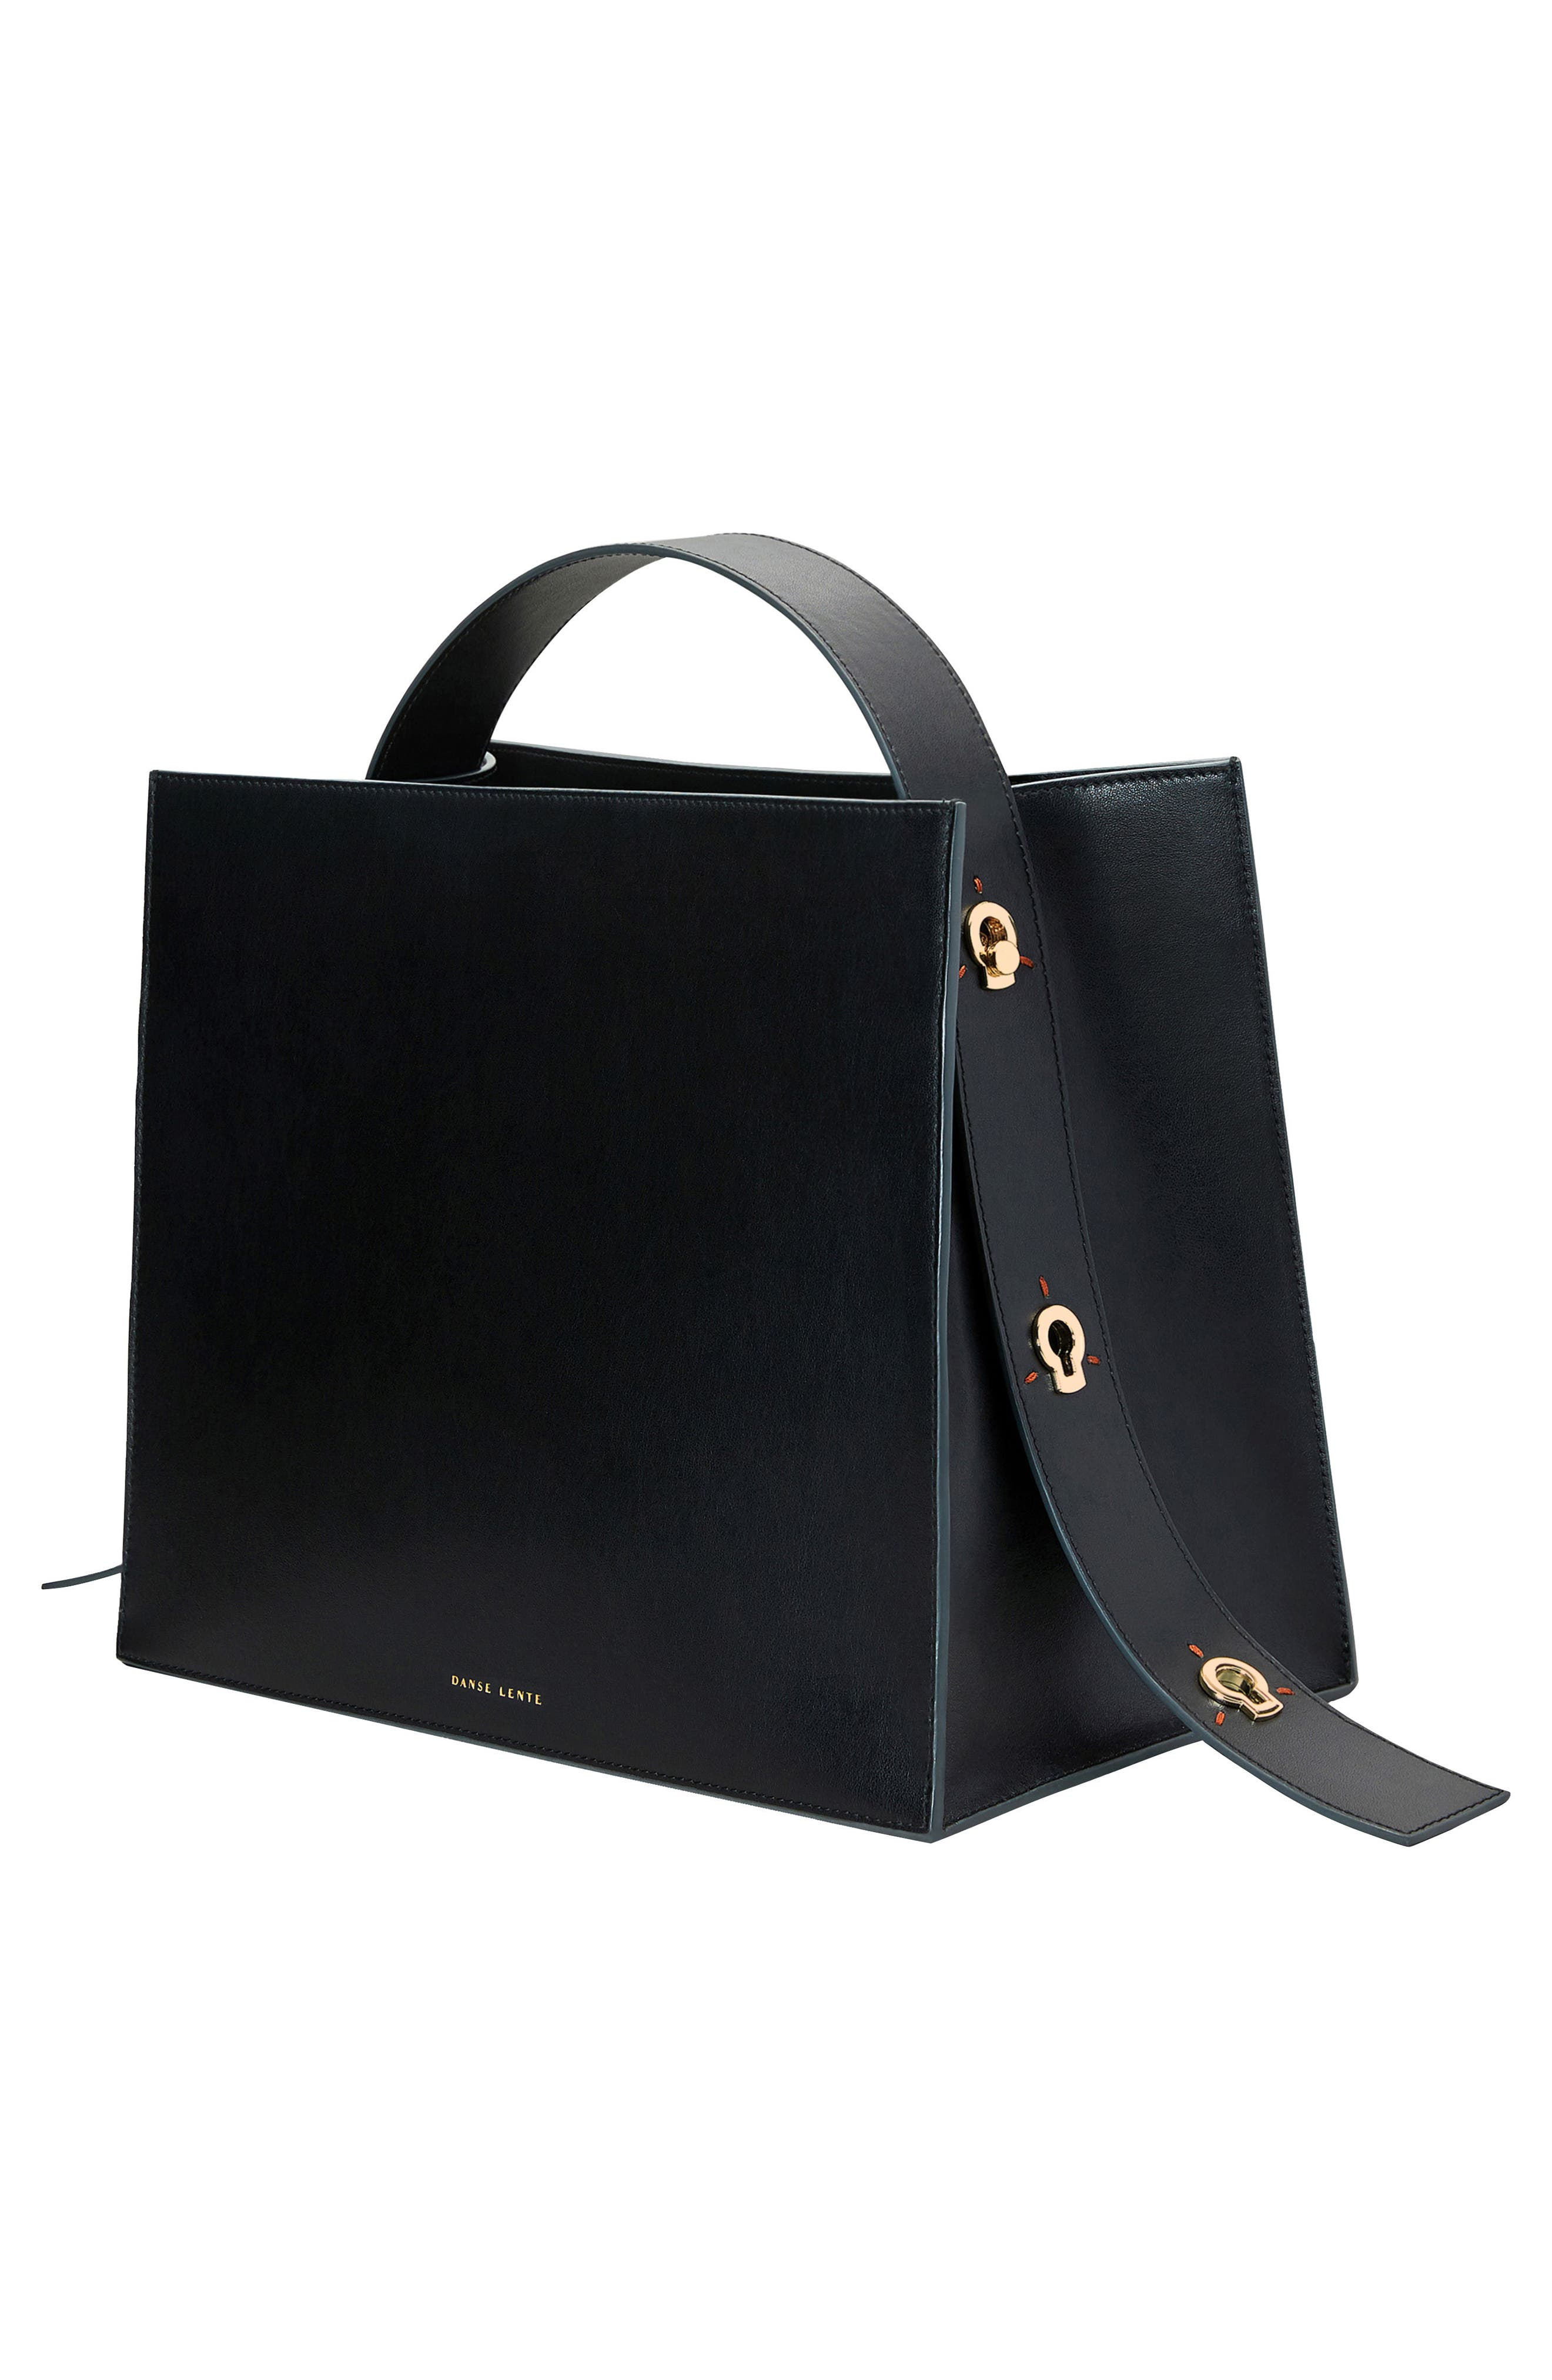 Young Leather Tote Bag,                             Alternate thumbnail 9, color,                             BLACK